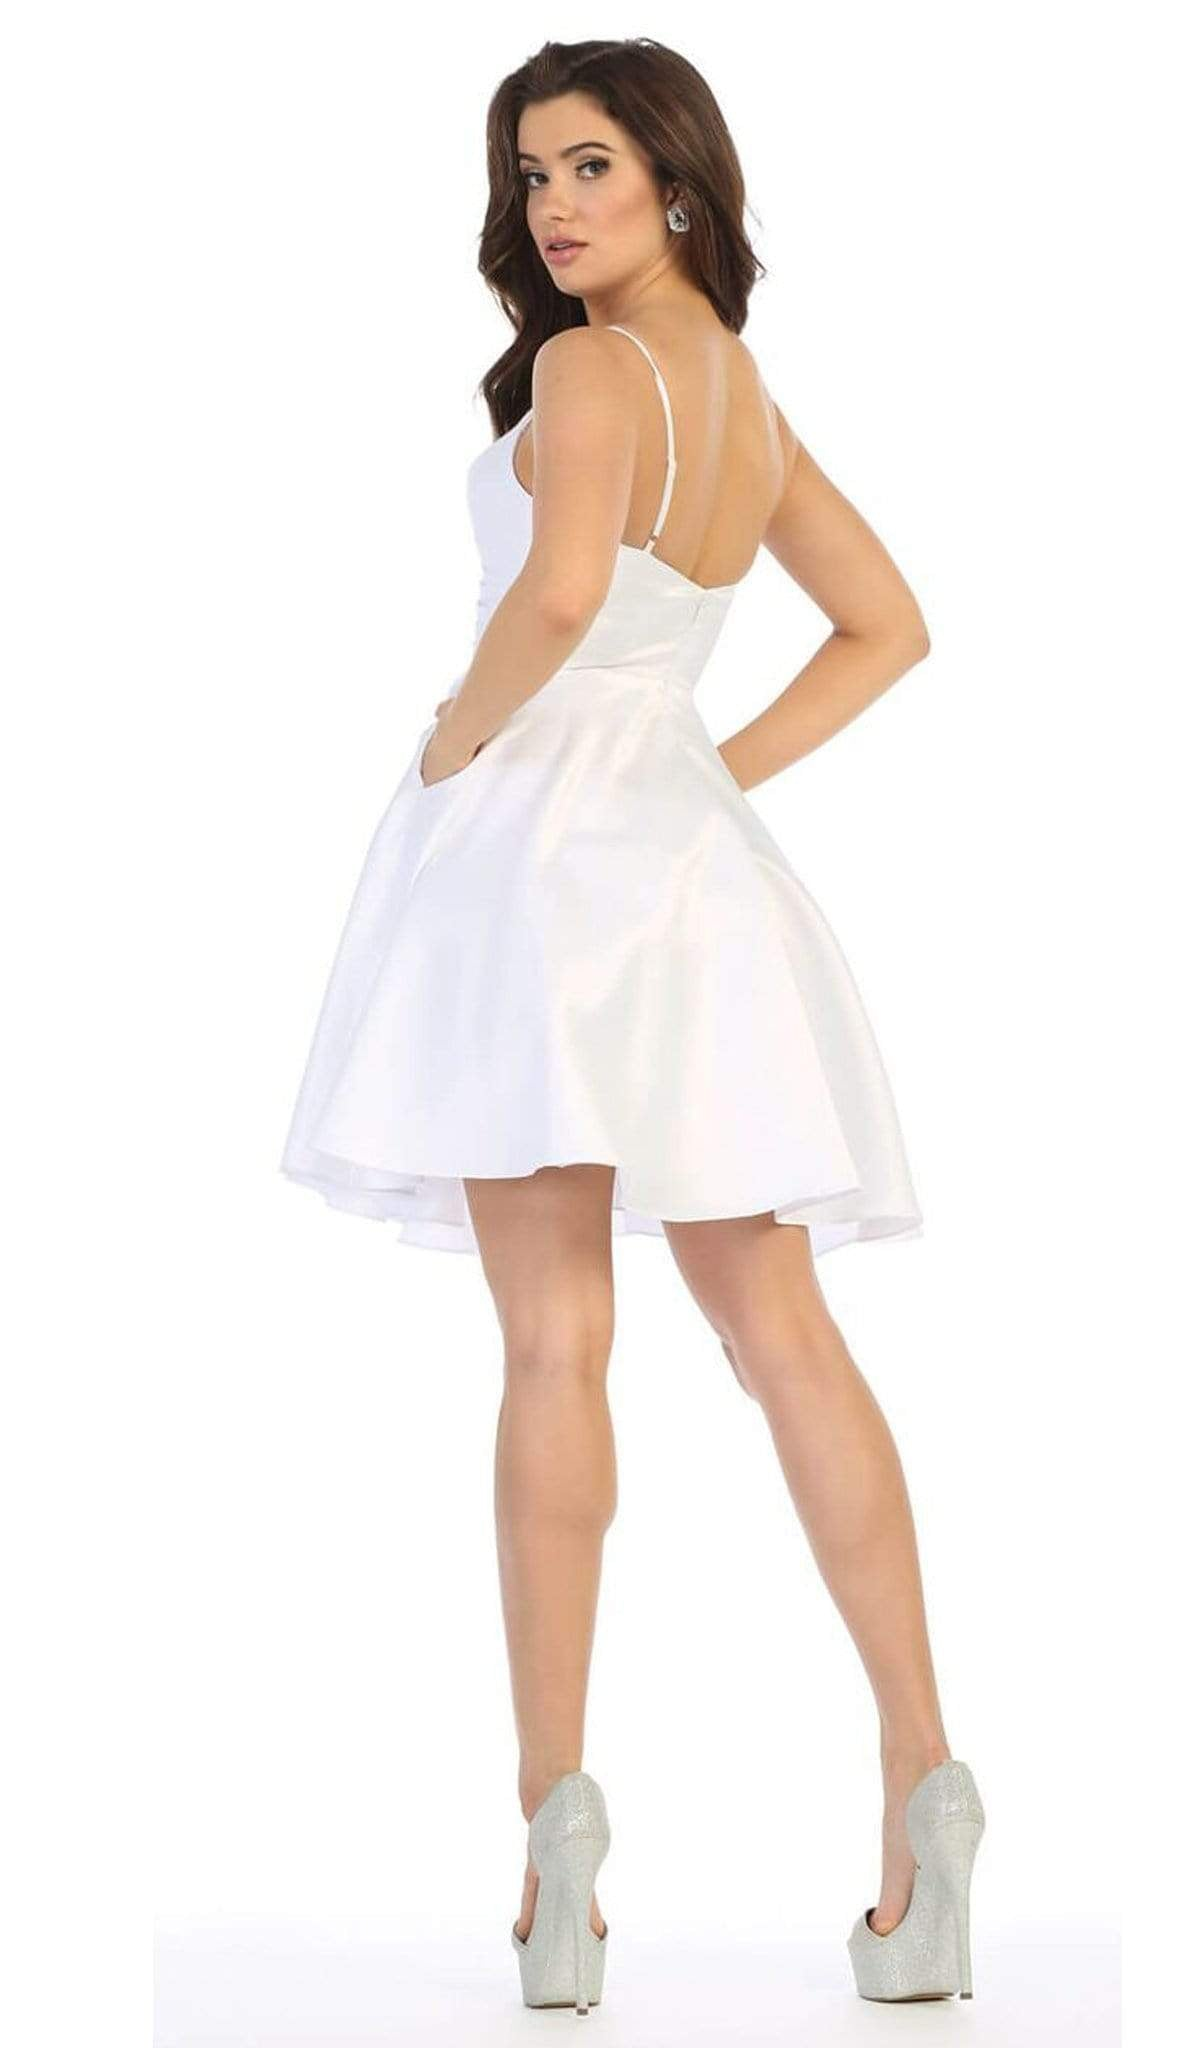 May Queen - MQ1654 V Neck Sleeveless Fit and Flare Short Dress In White